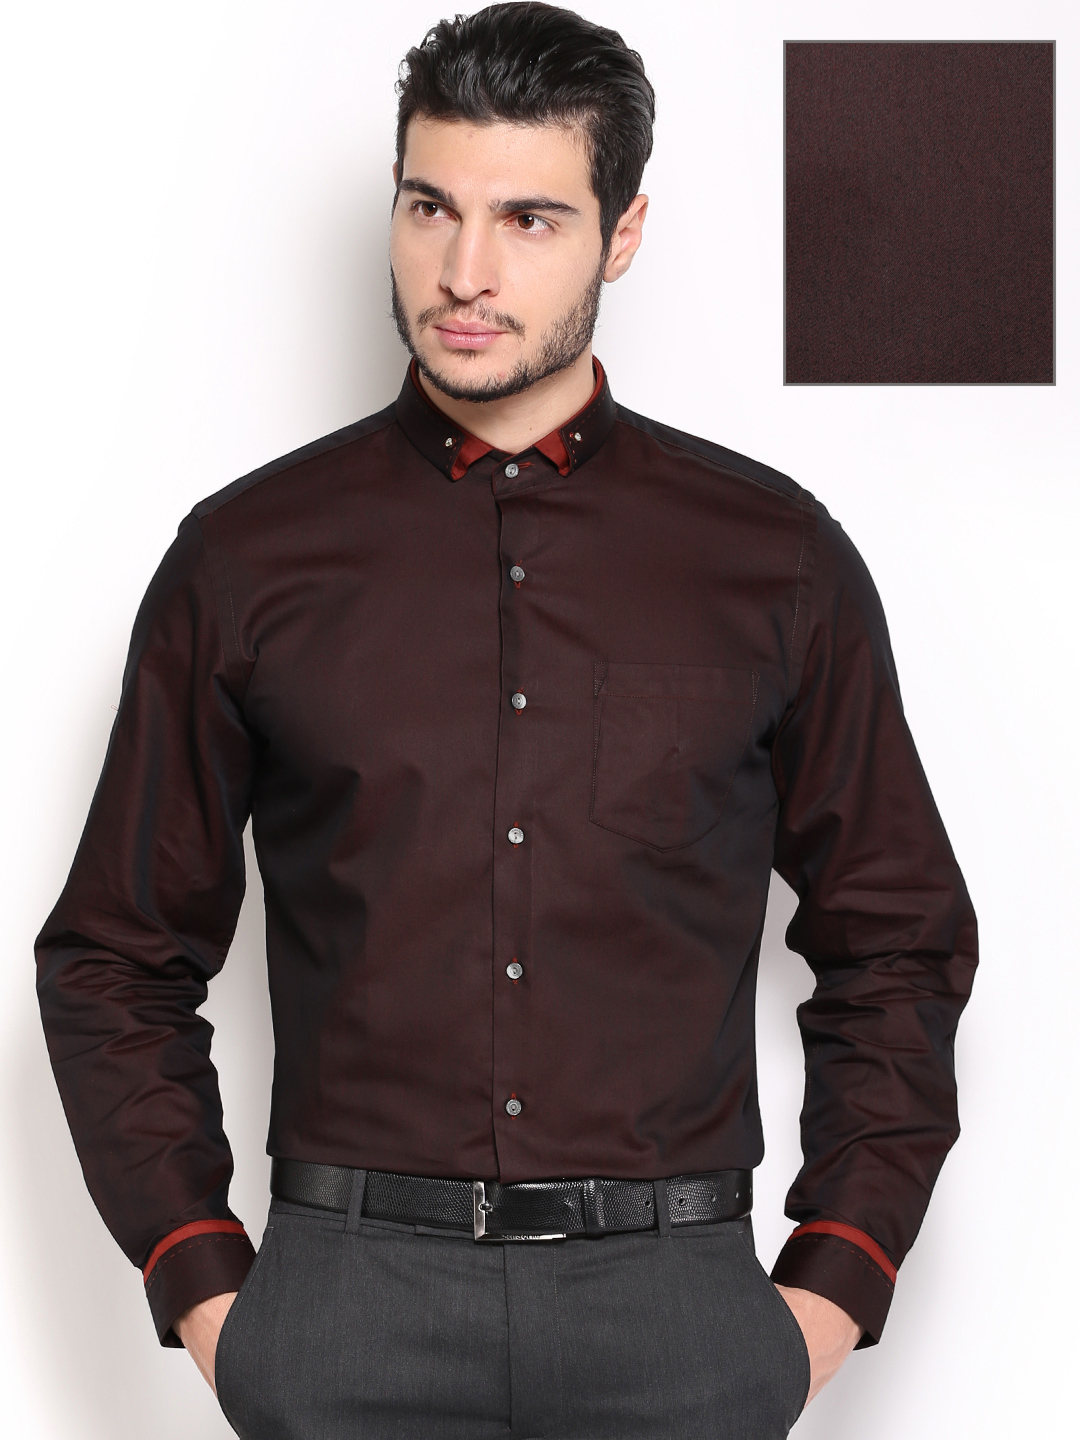 Brown shirts for men buy black coffee men coffee brown slim fit formal shirt - shirts for men  627033 DGGHMPC